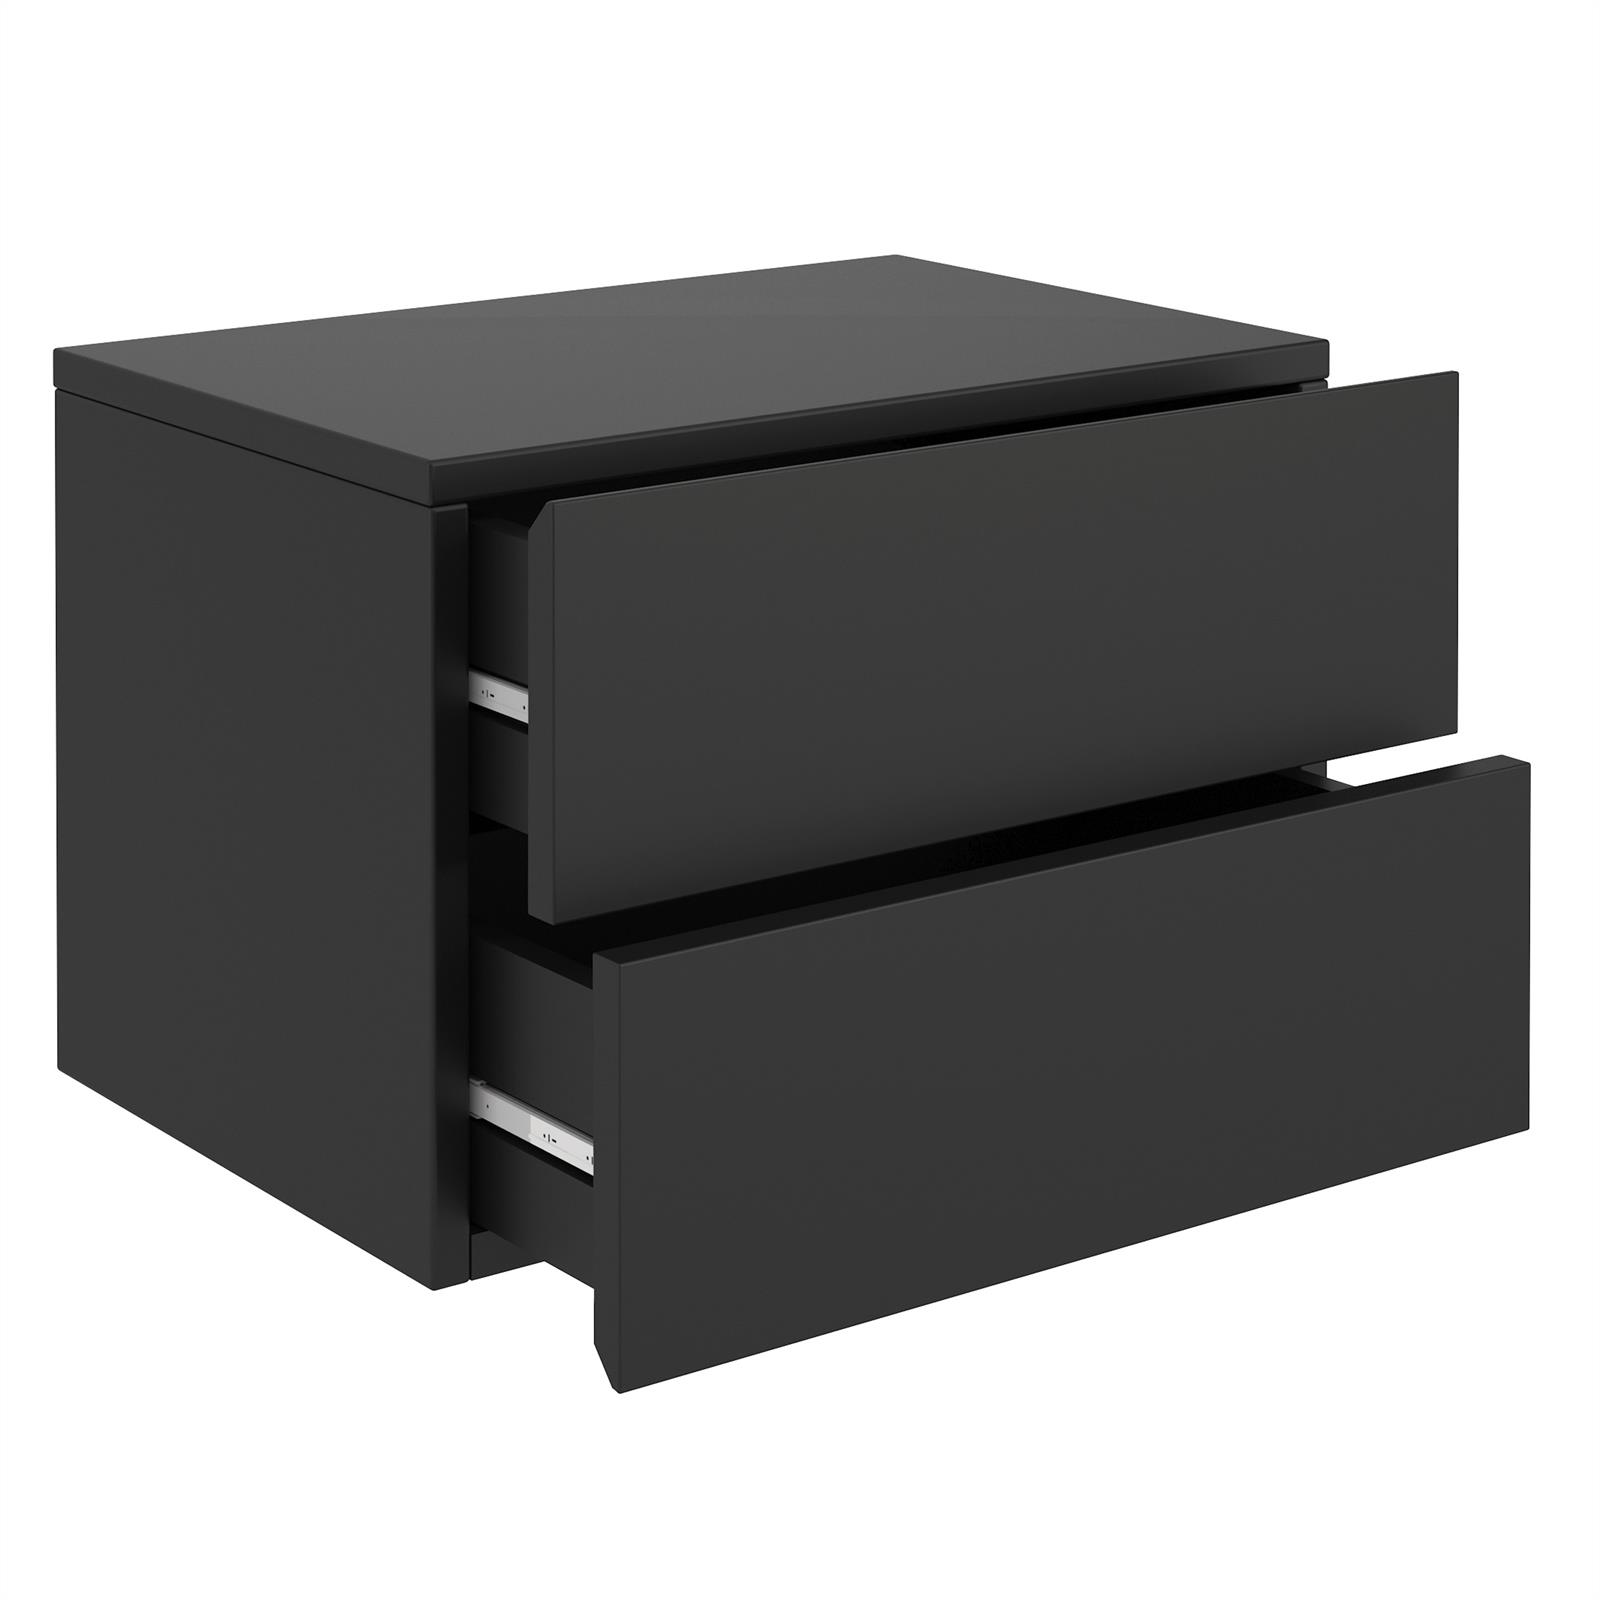 chevet suspendu florent 2 tiroirs m lamin noir mat mobil meubles. Black Bedroom Furniture Sets. Home Design Ideas